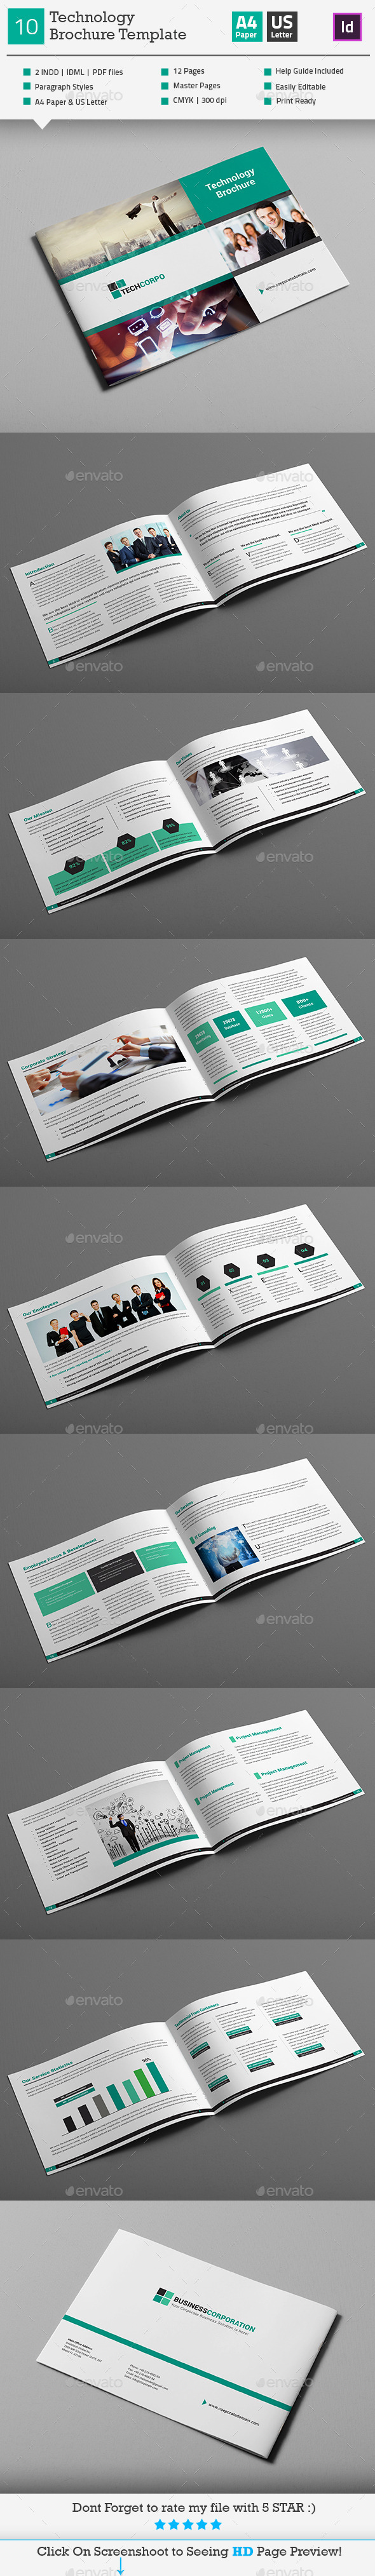 GraphicRiver Technology Landscape Brochure Template V10 11030221